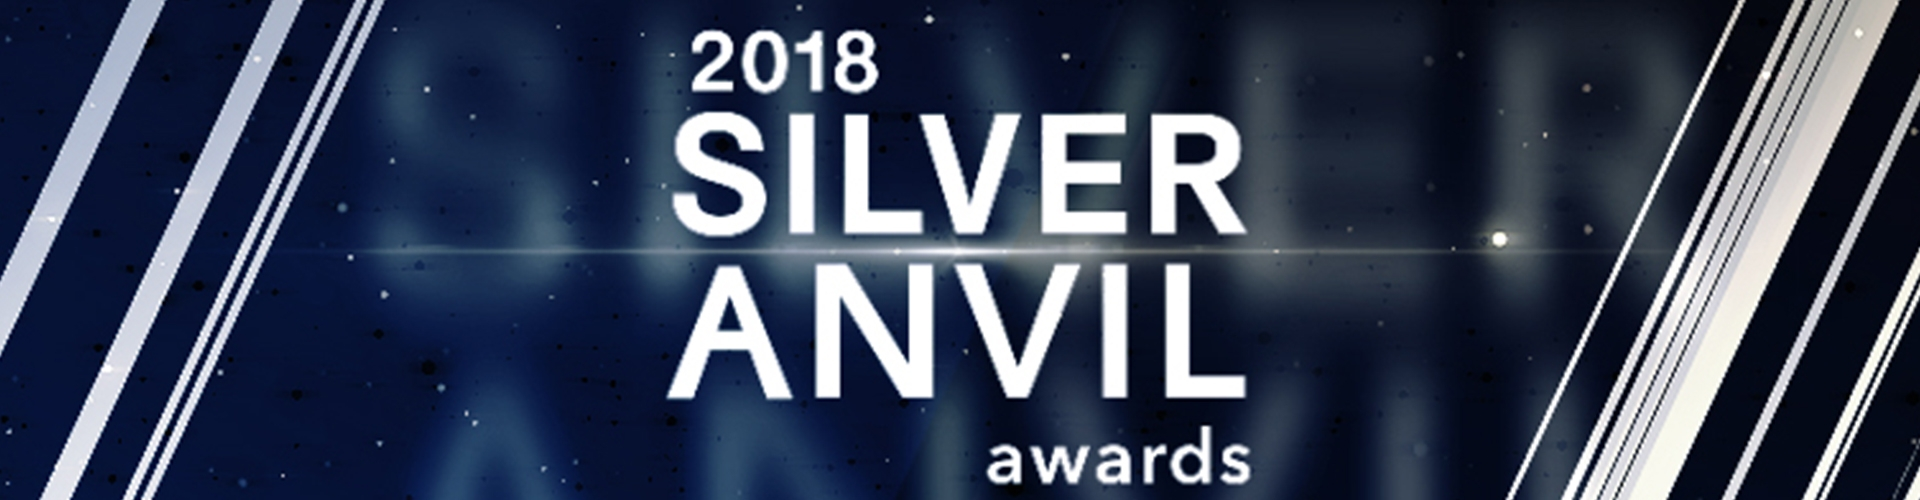 Silver Anvil_2018 Header Banner